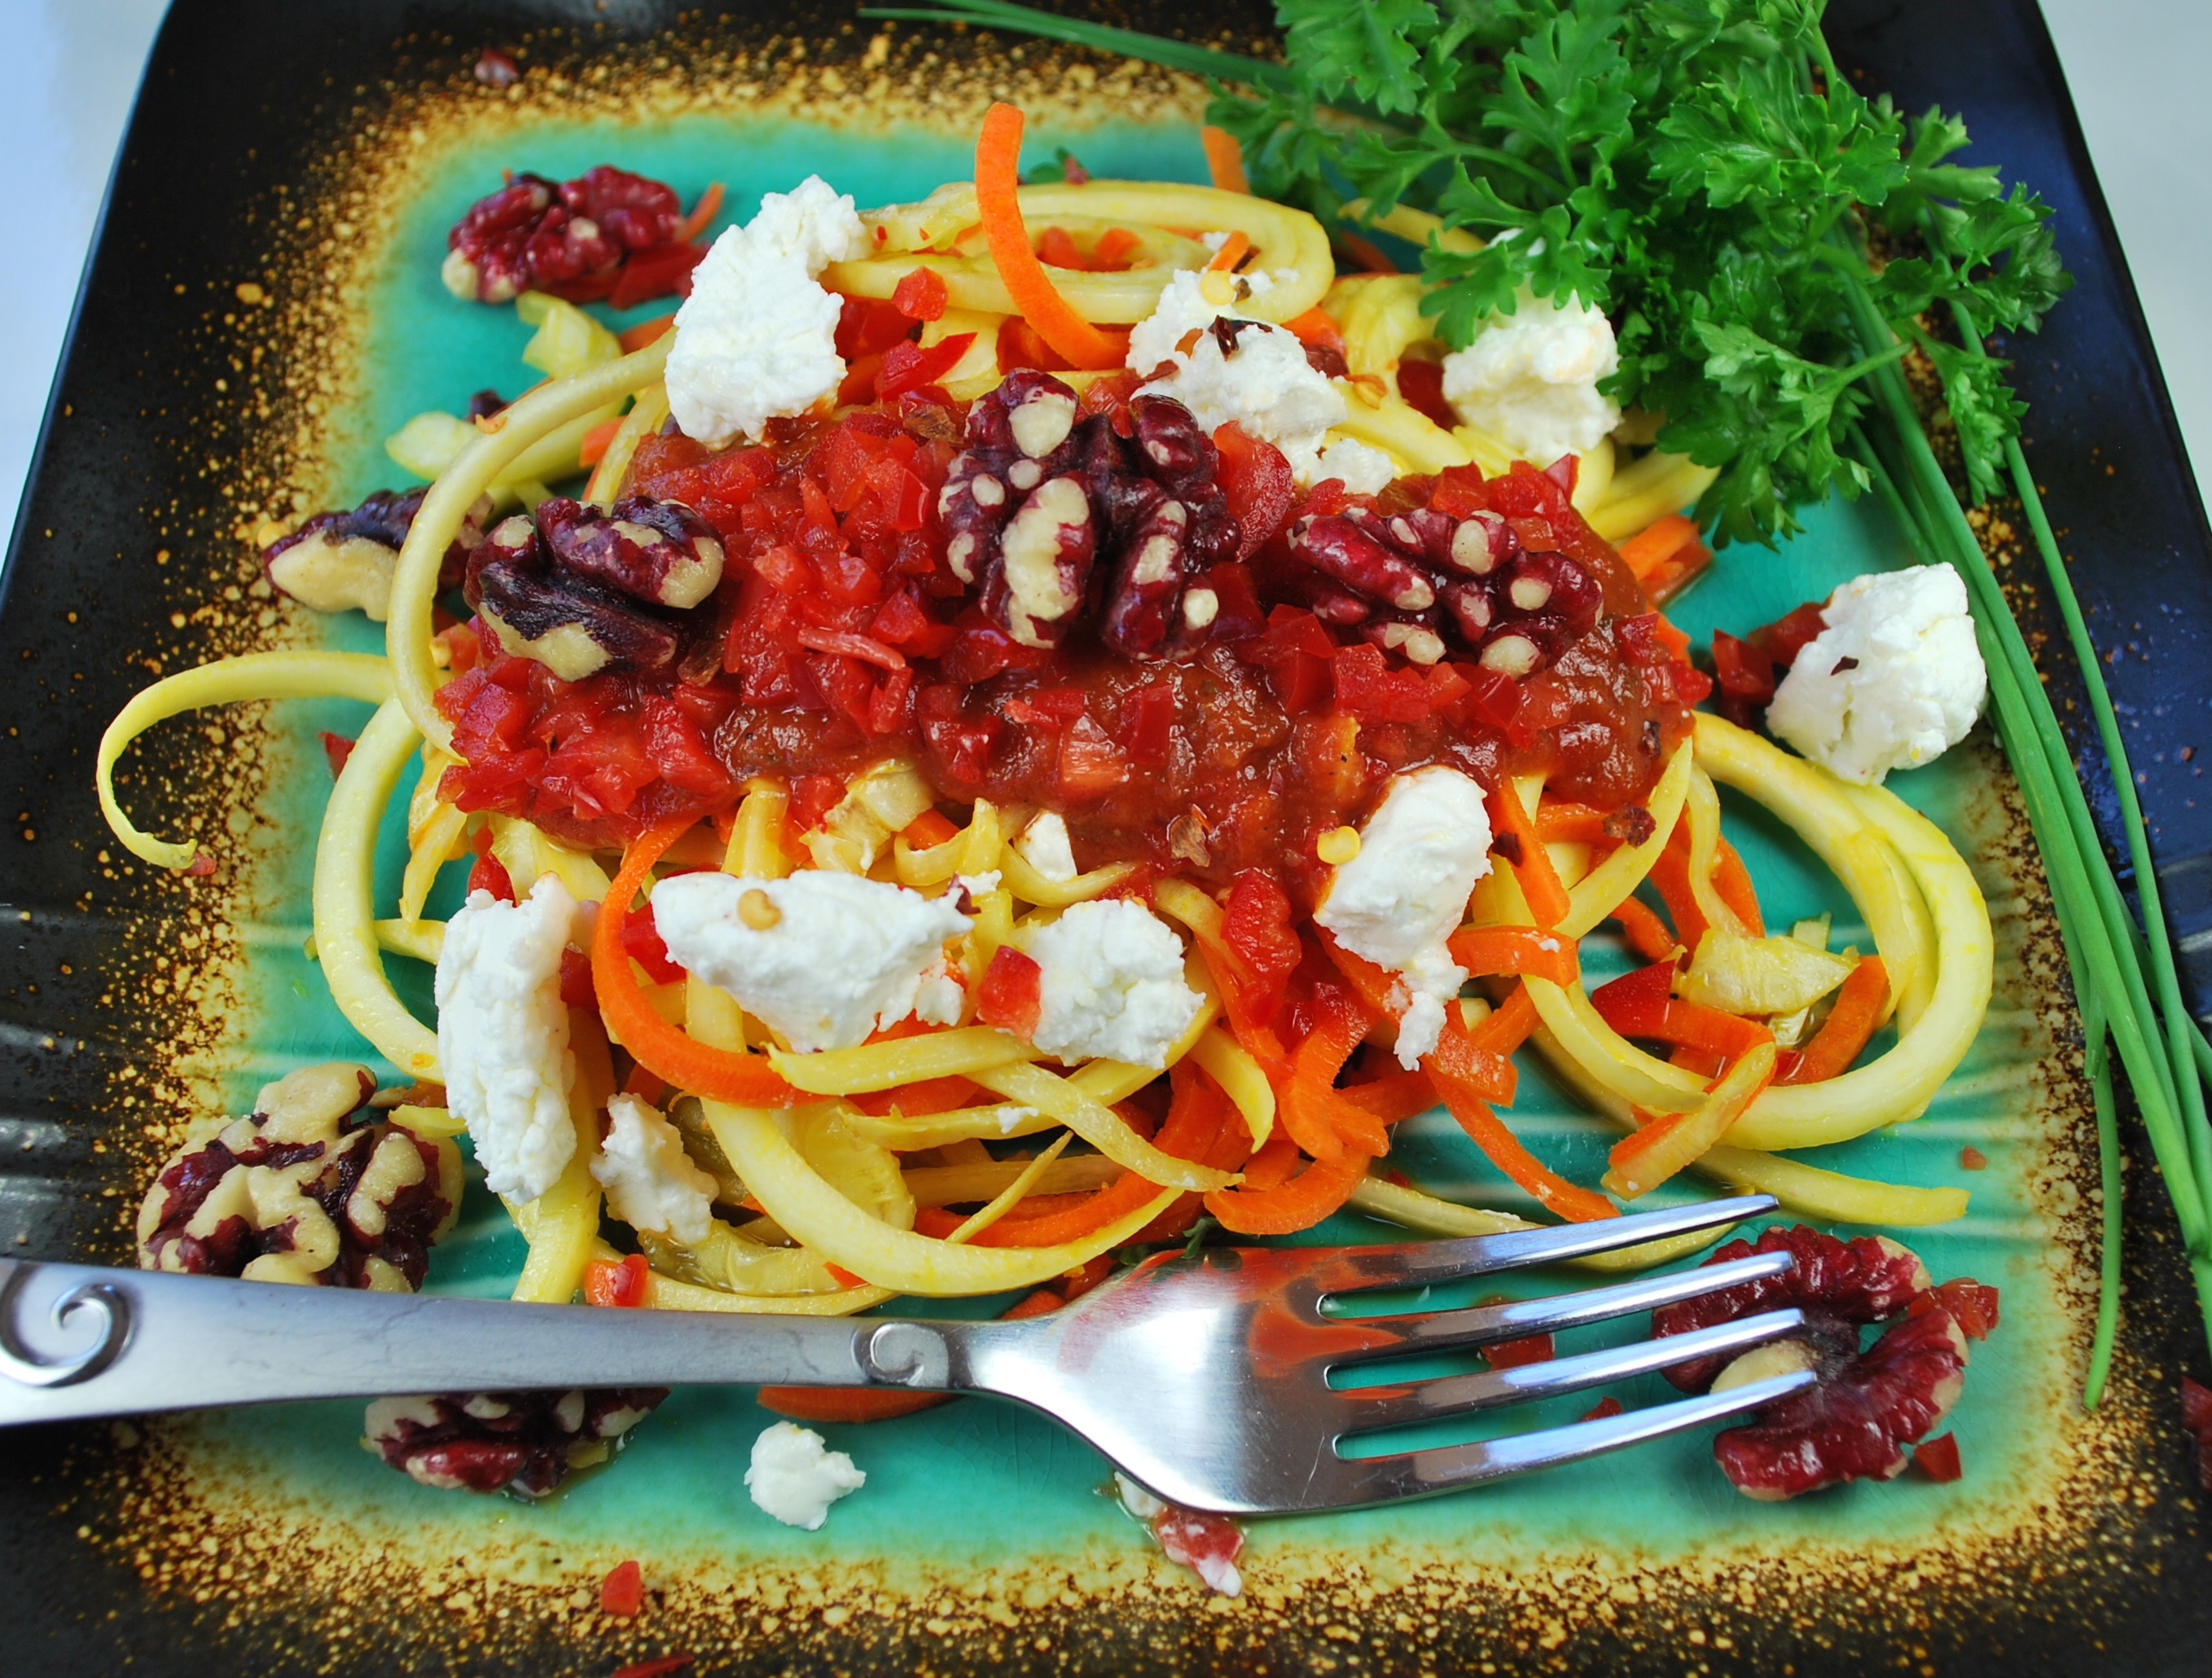 spiralizing recipes - Pasta Roasted Red Pepper Walnut Goat Cheese